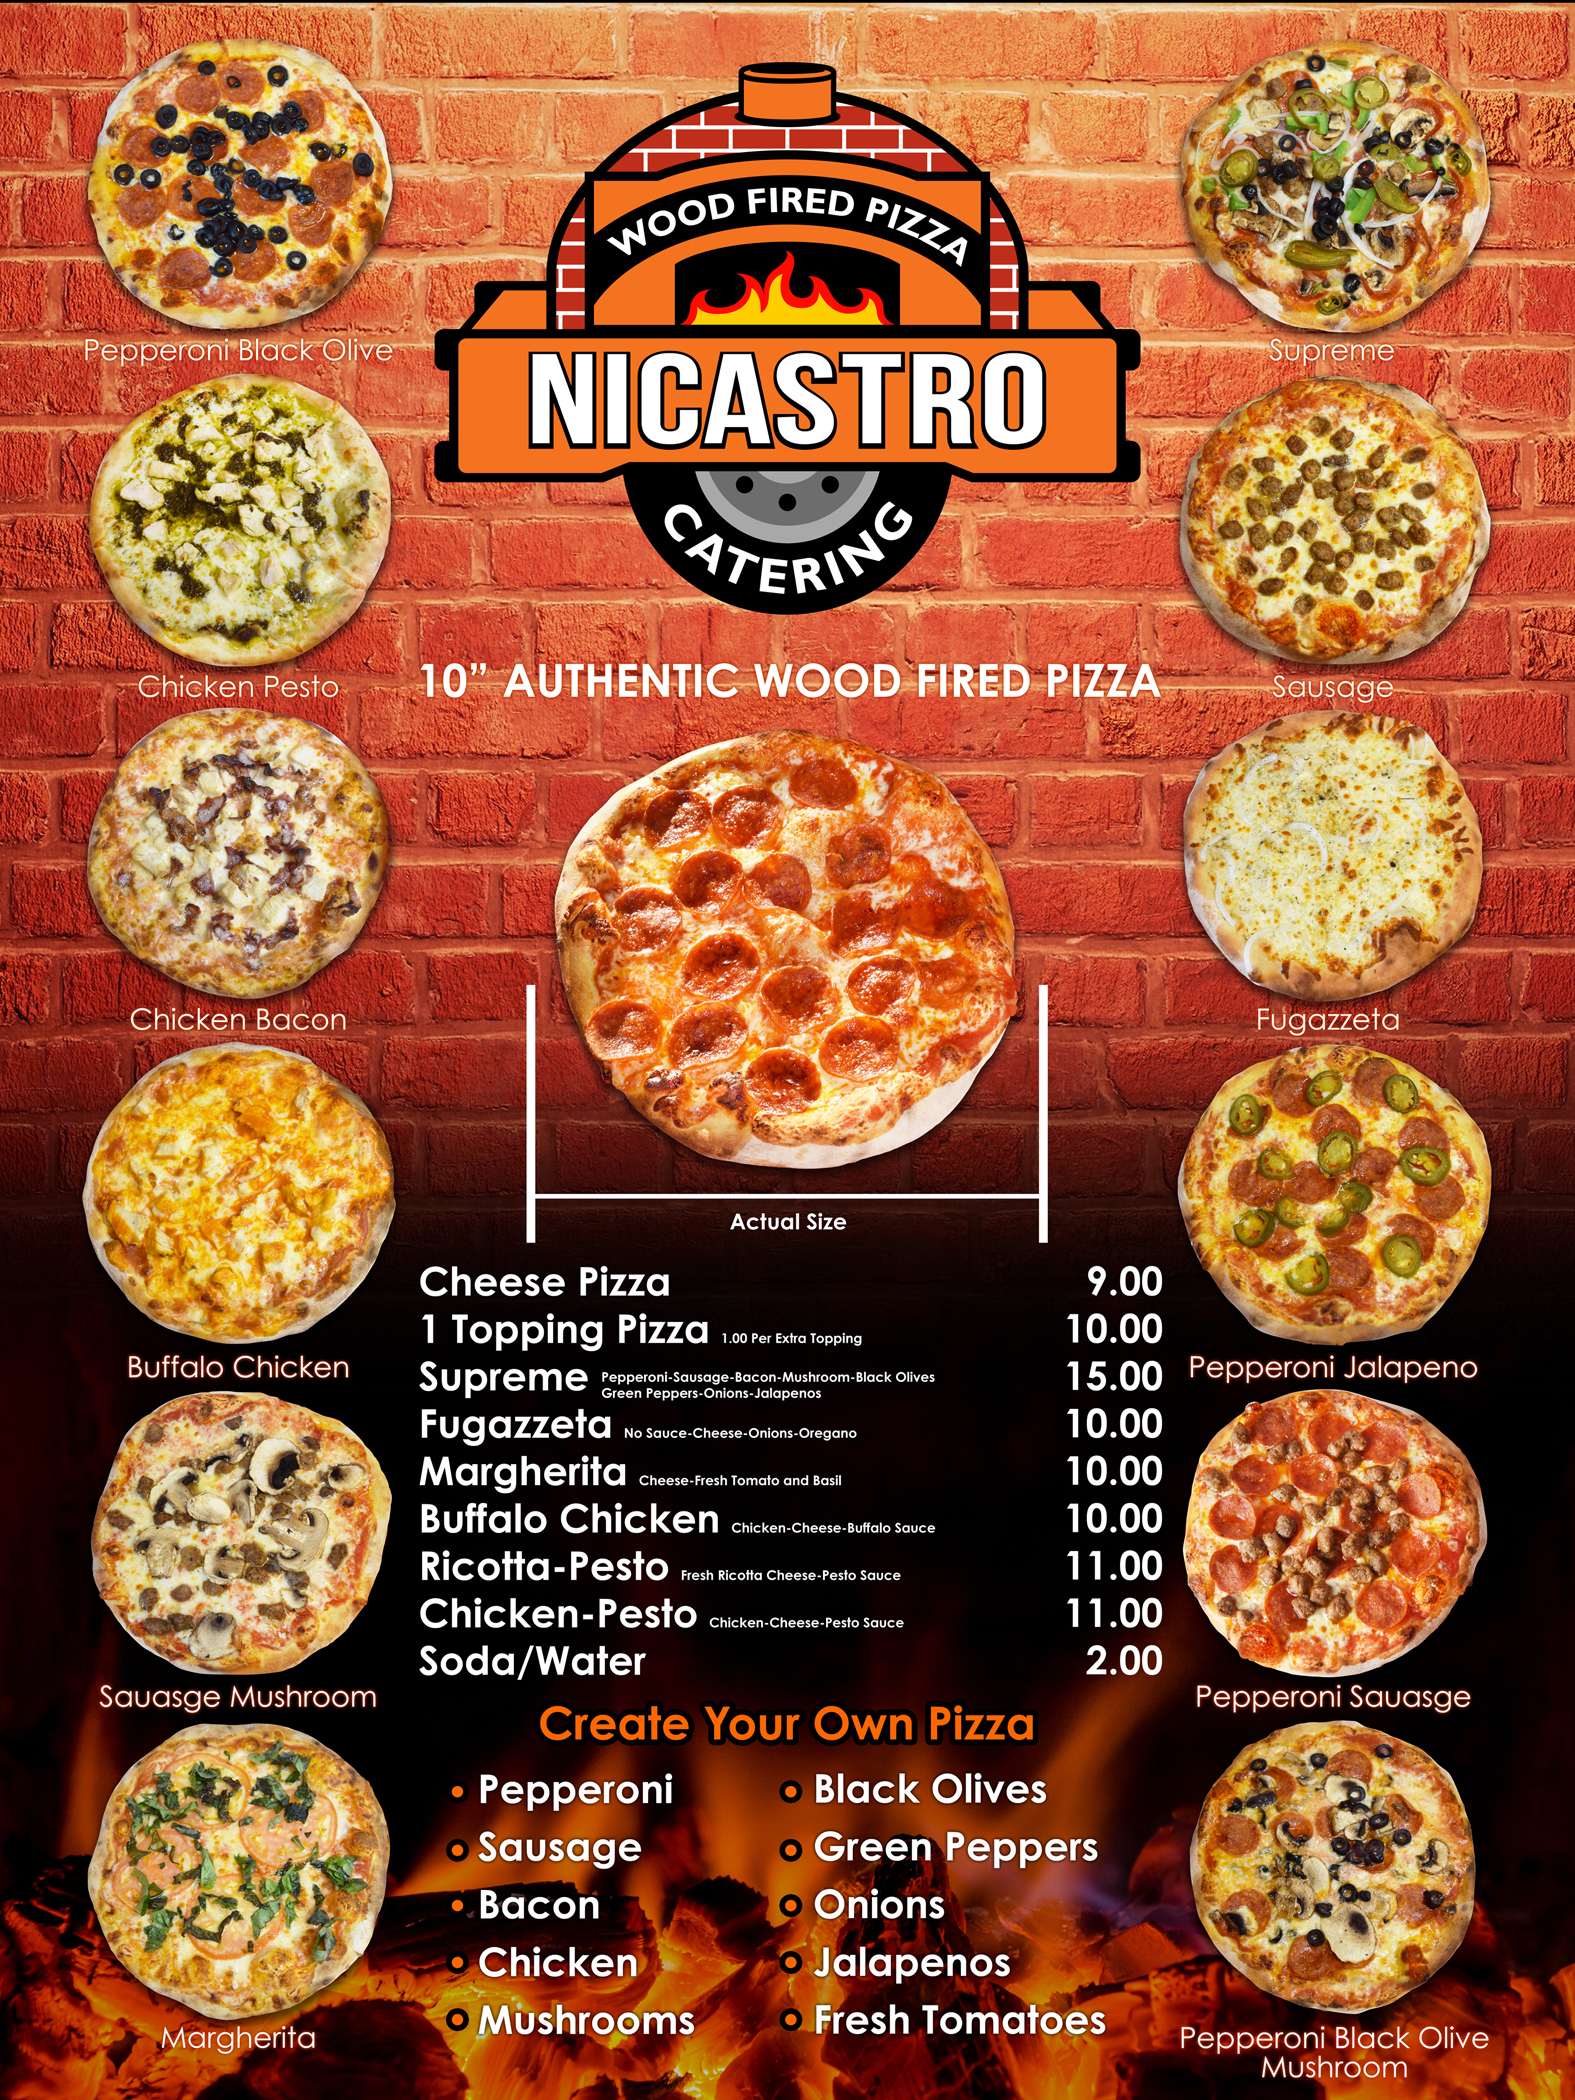 nicastro wood fired pizza catering